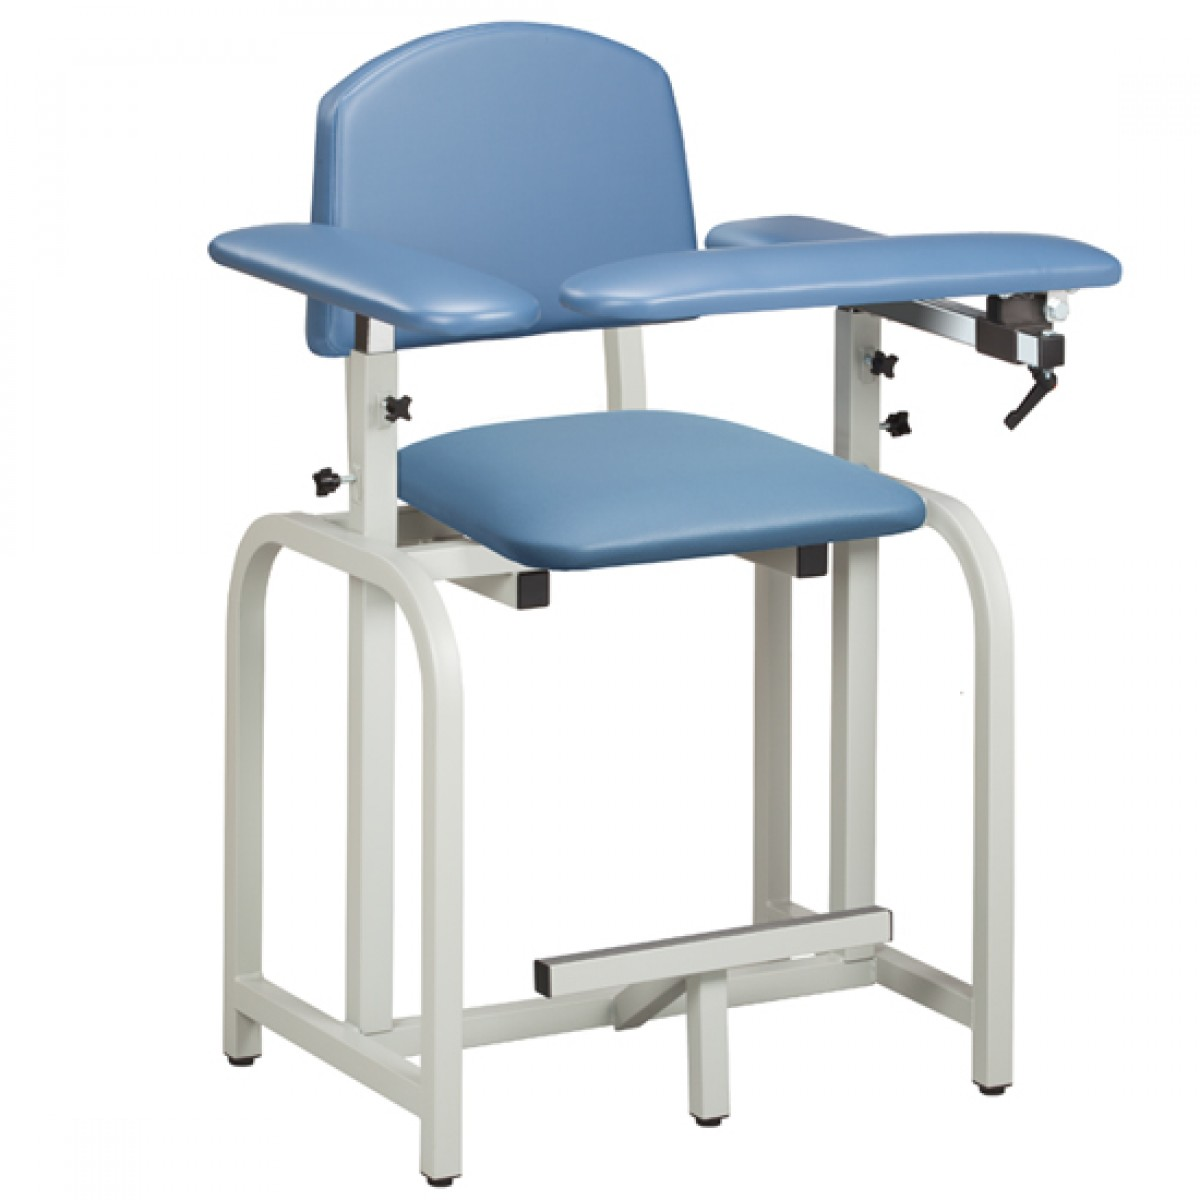 Hospital Phlebotomy Chairs Clinton Blood Drawing Chair